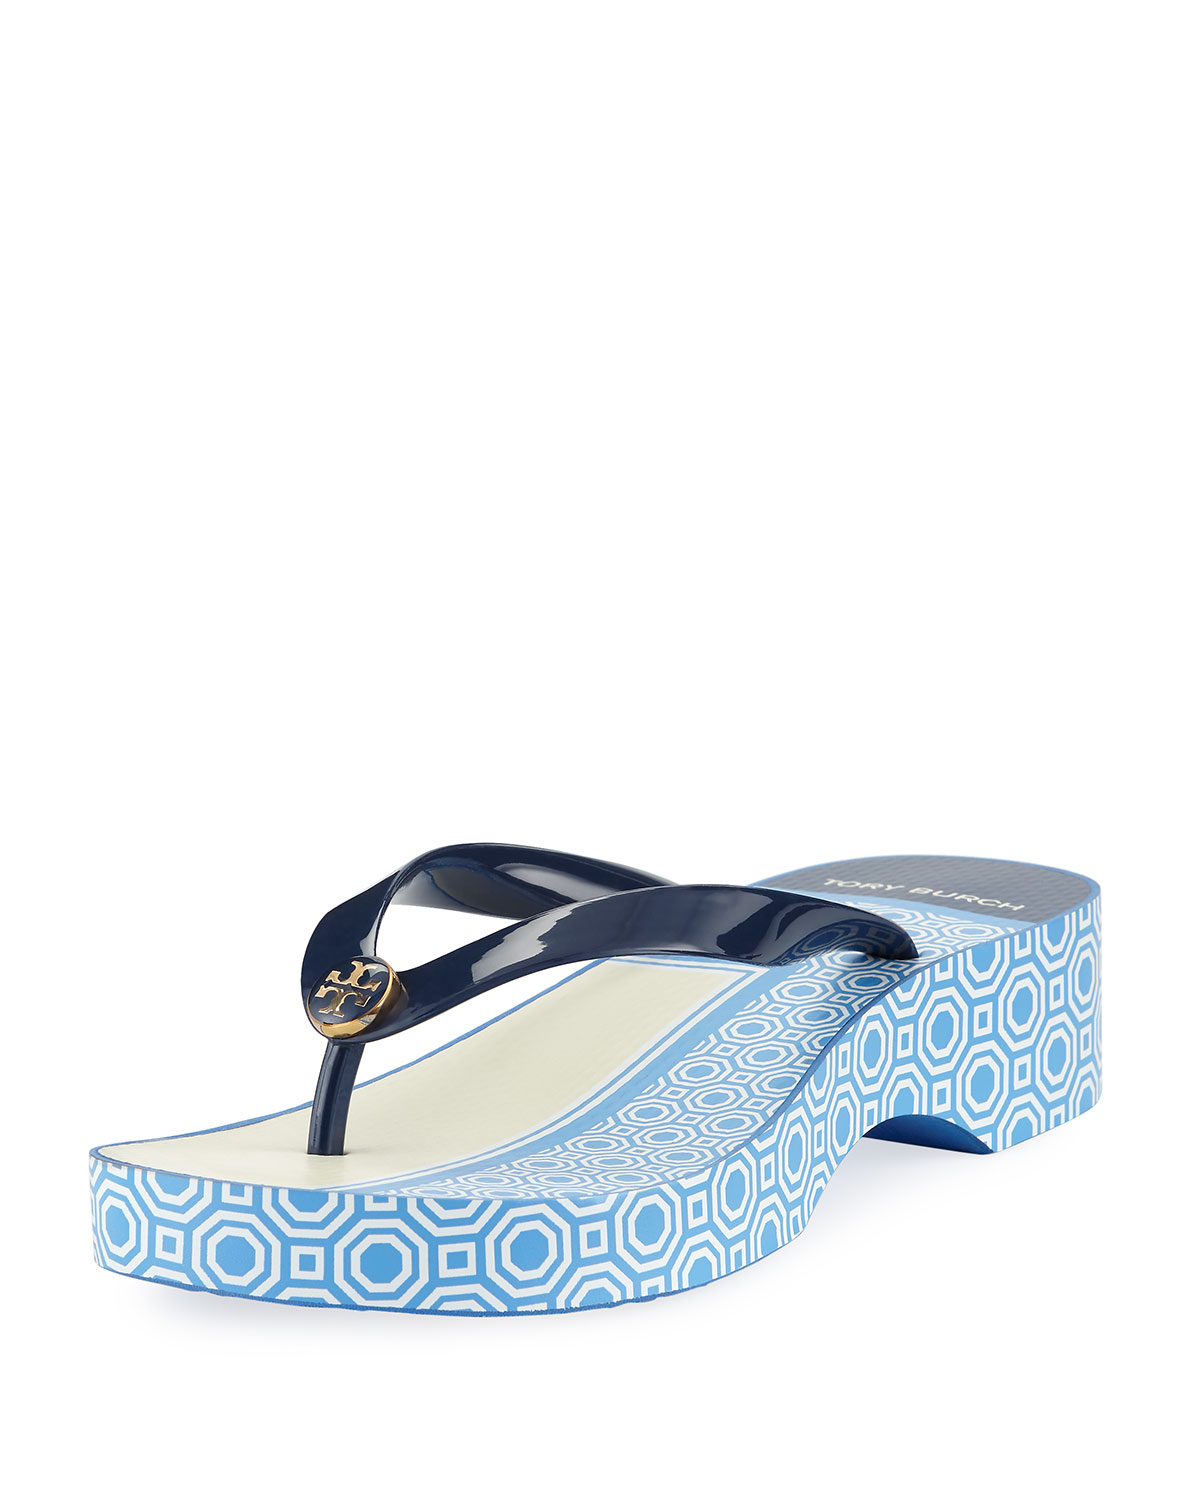 1405bb70ca0b Tory Burch Cutout Wedge Flip Flop